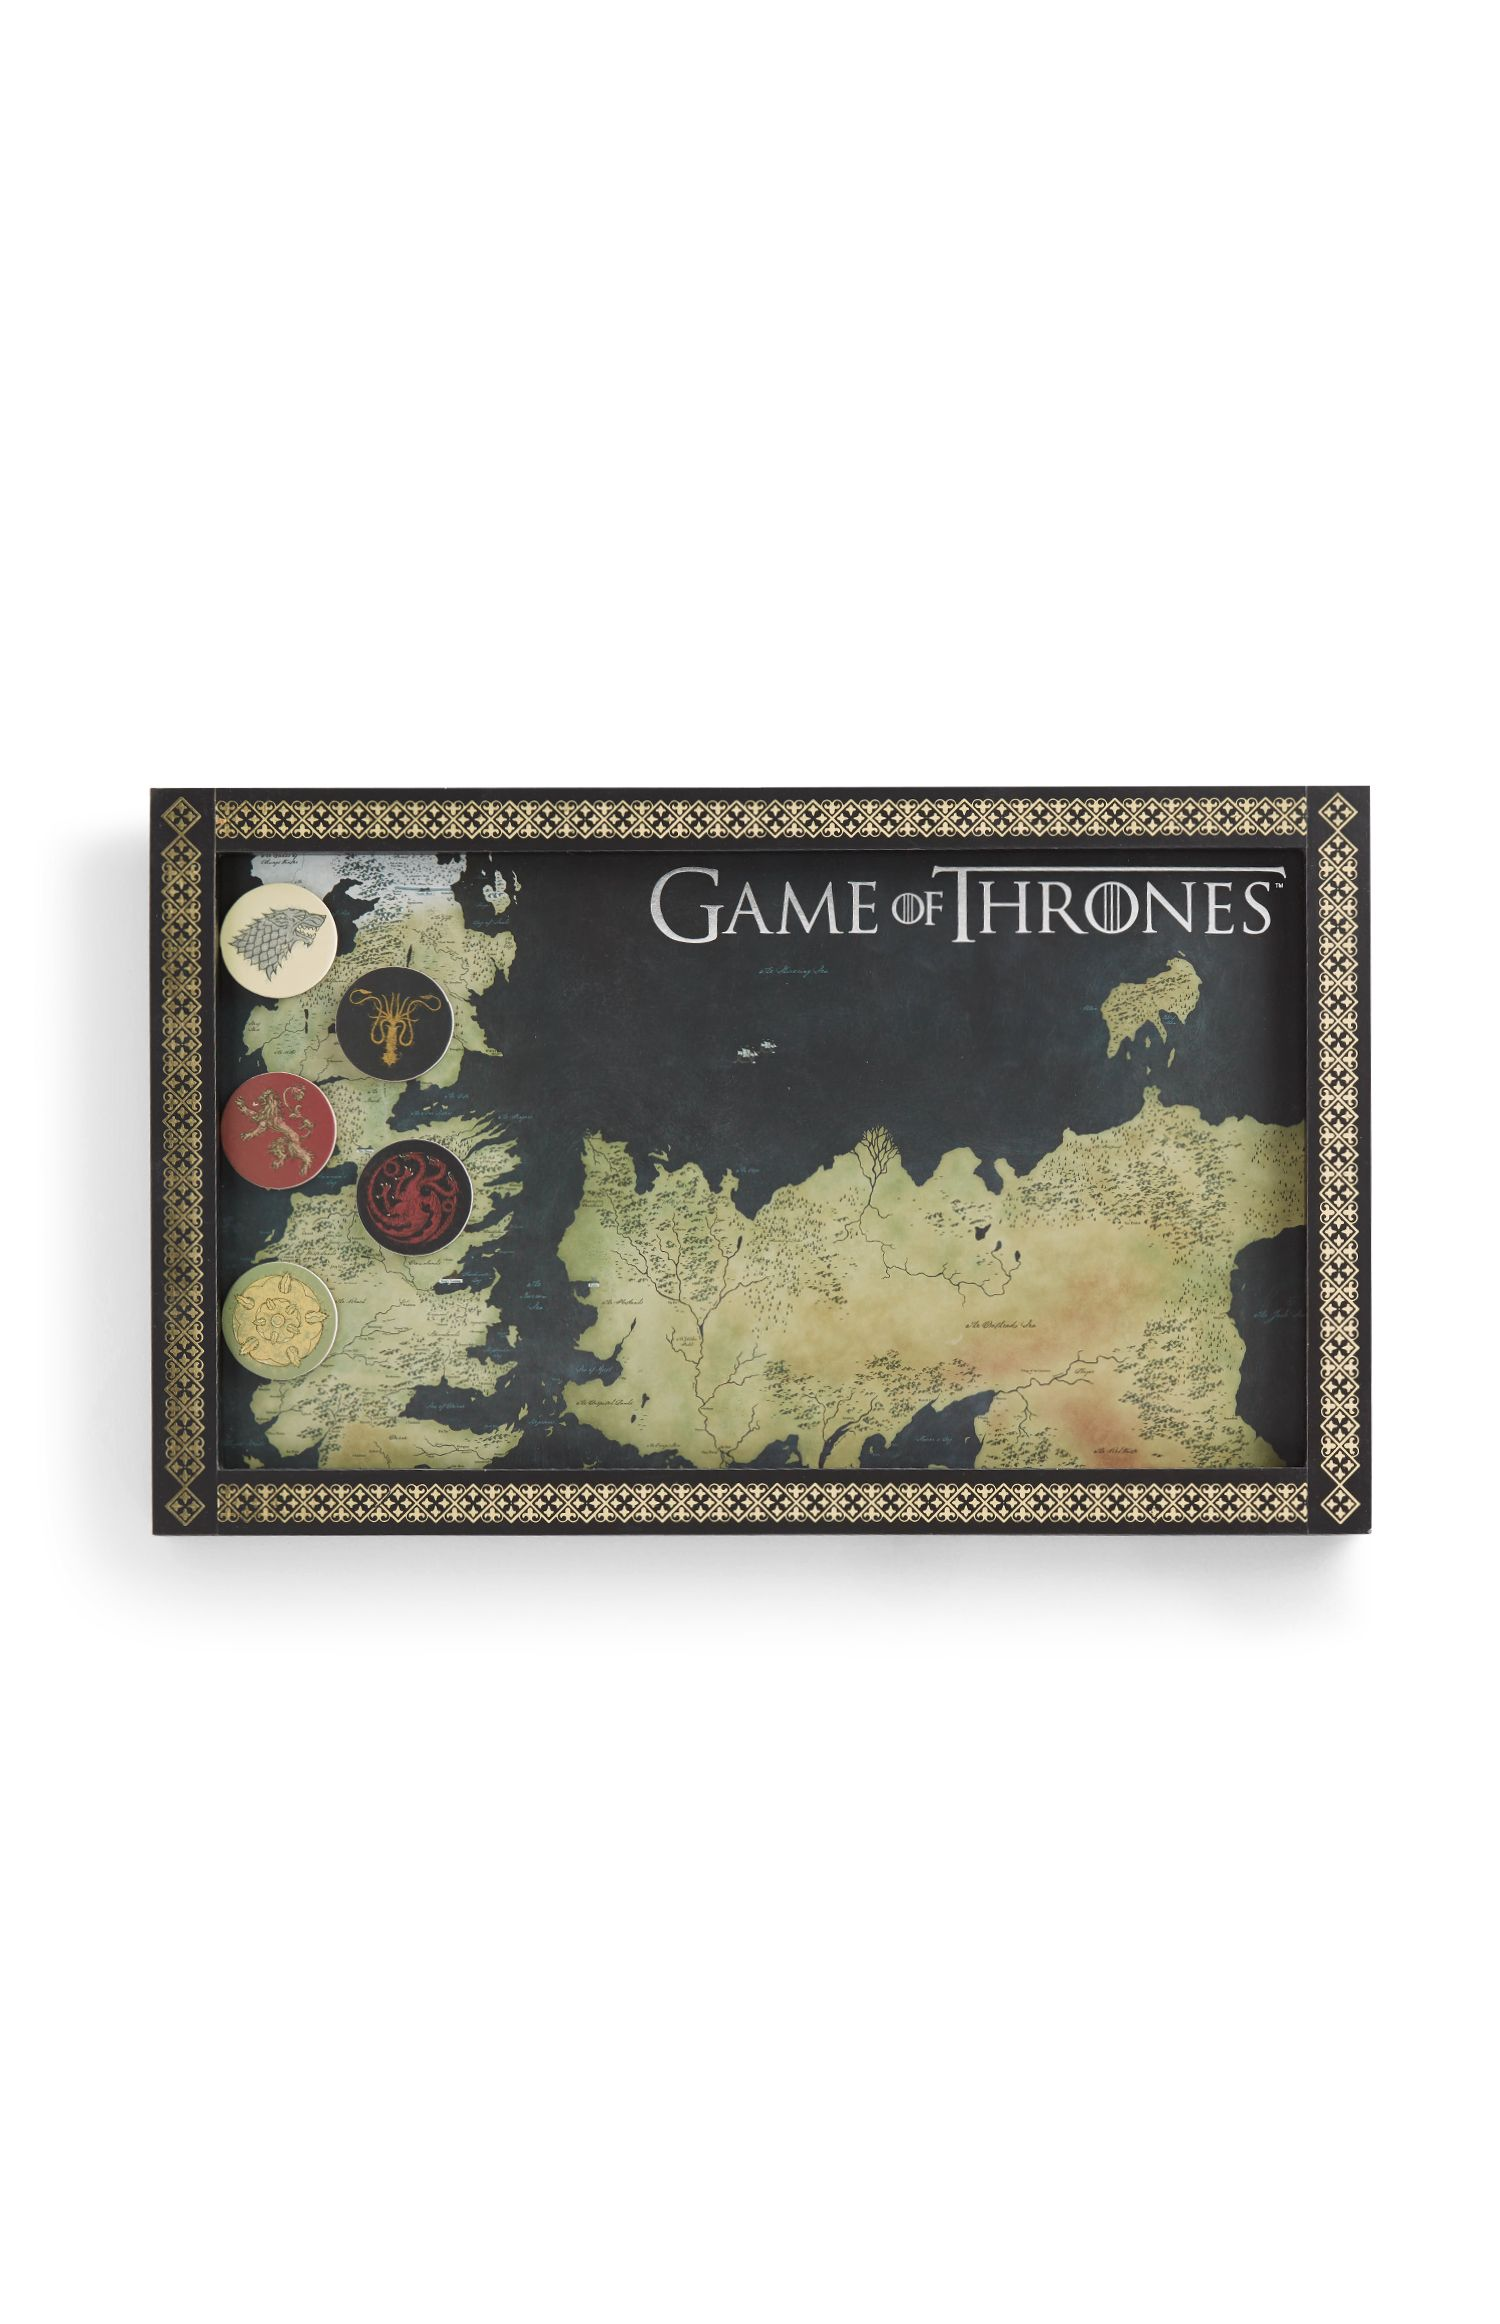 Primark Game Of Thrones Official HBO Cushion Pillow 50cm X 30cm Brand New